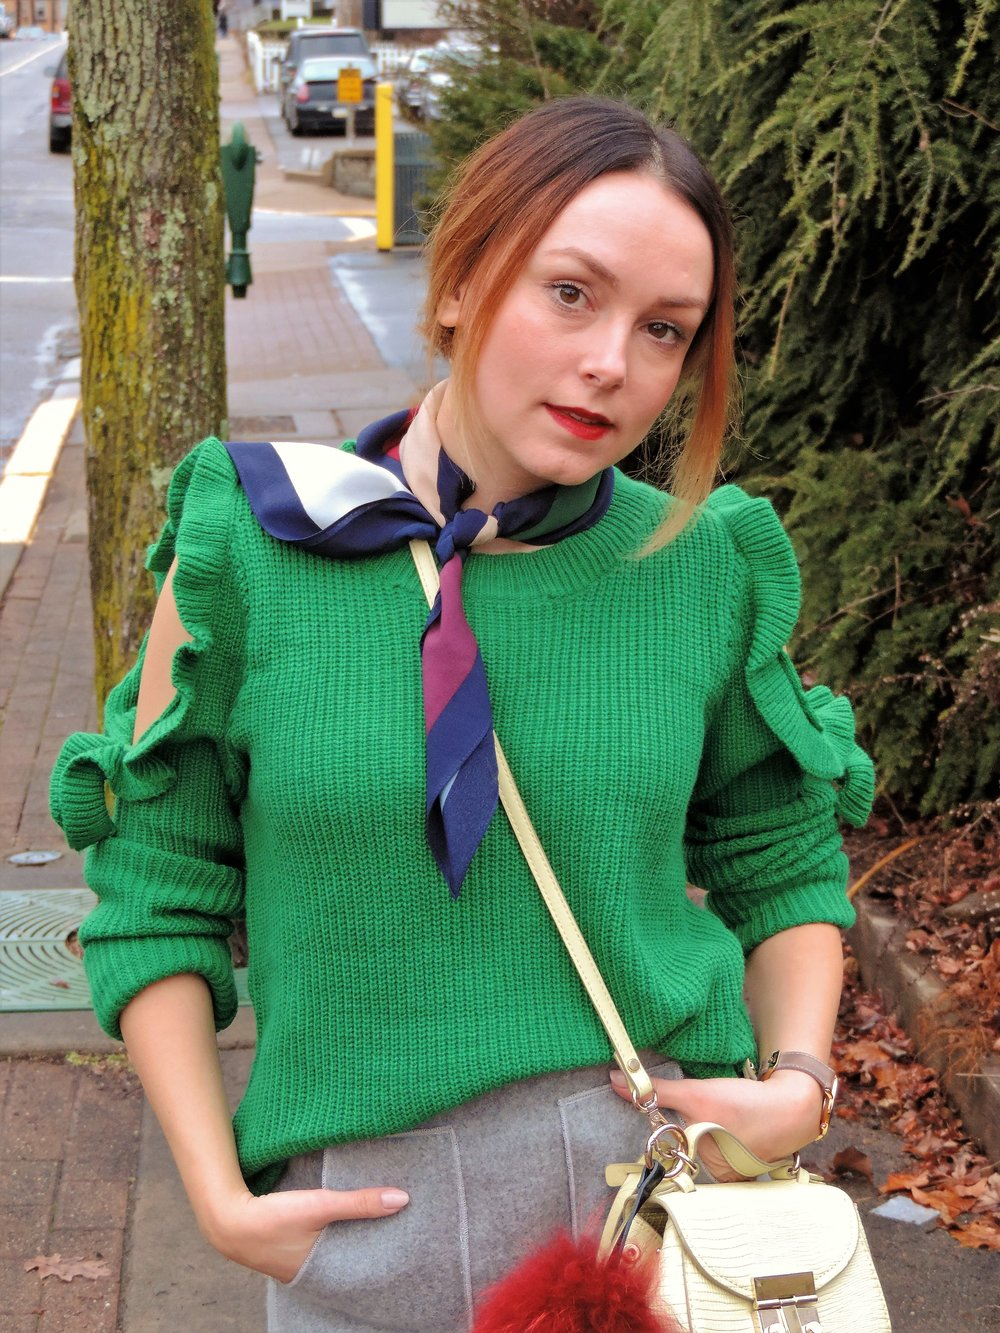 My red lip also helps to balance the green of the sweater.